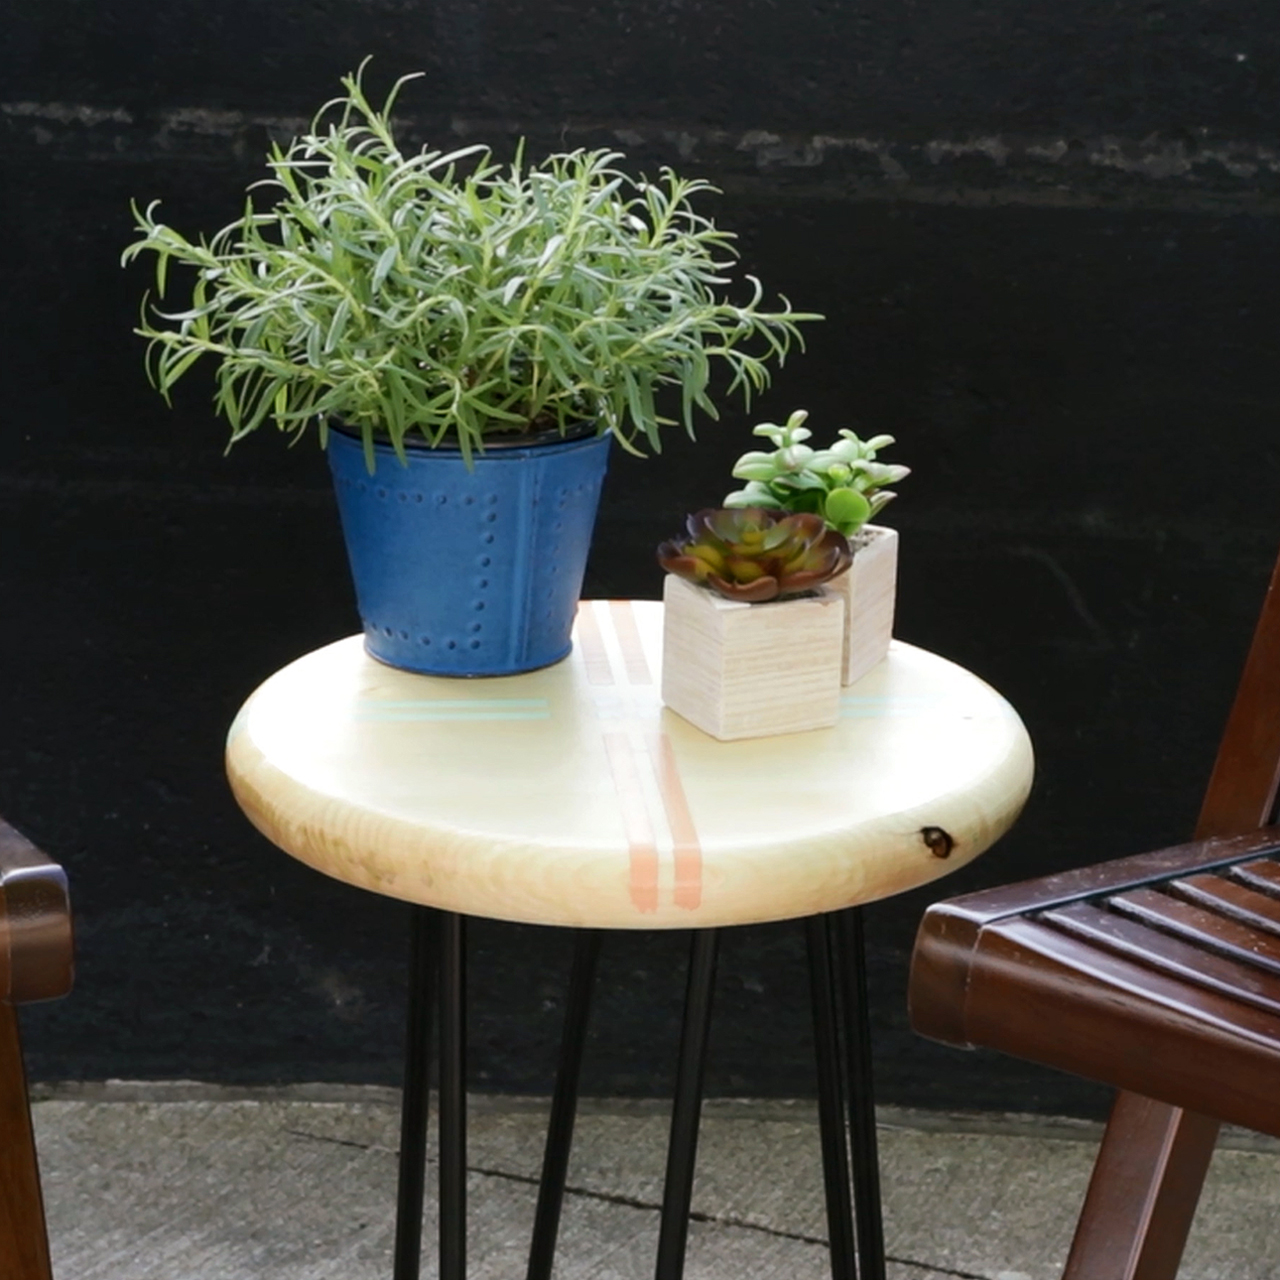 diy outdoor side table with hairpin legs better homes gardens leg green container plants blue accent dressers furniture industrial drawer waterproof garden covers half moon ikea